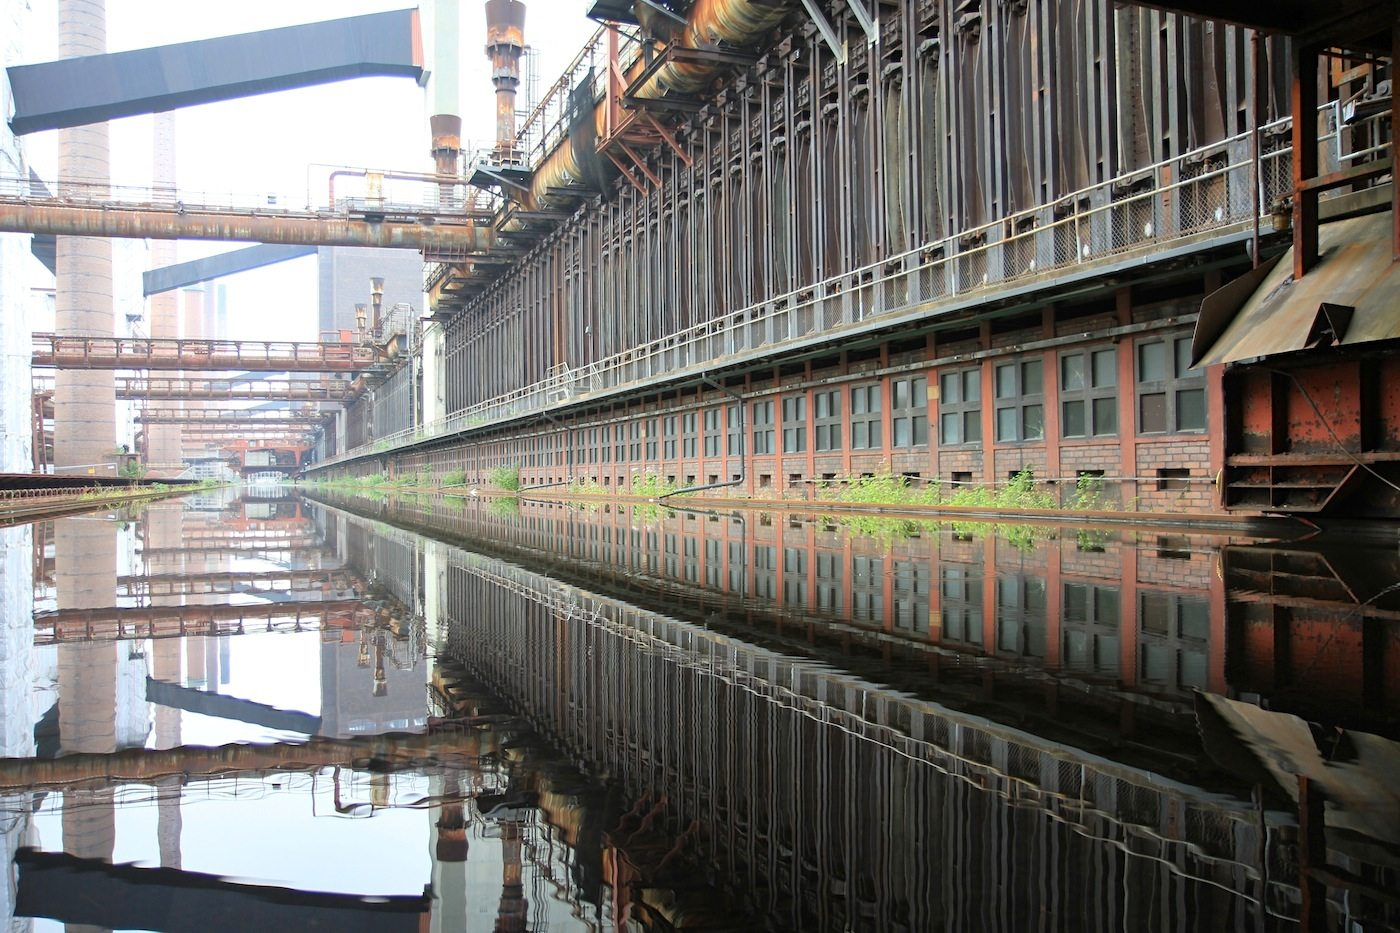 Zeche Zollverein Alte Kokerei © Jan Dimog 2. The negotiations failed and it was subsequently threatened to be demolished.